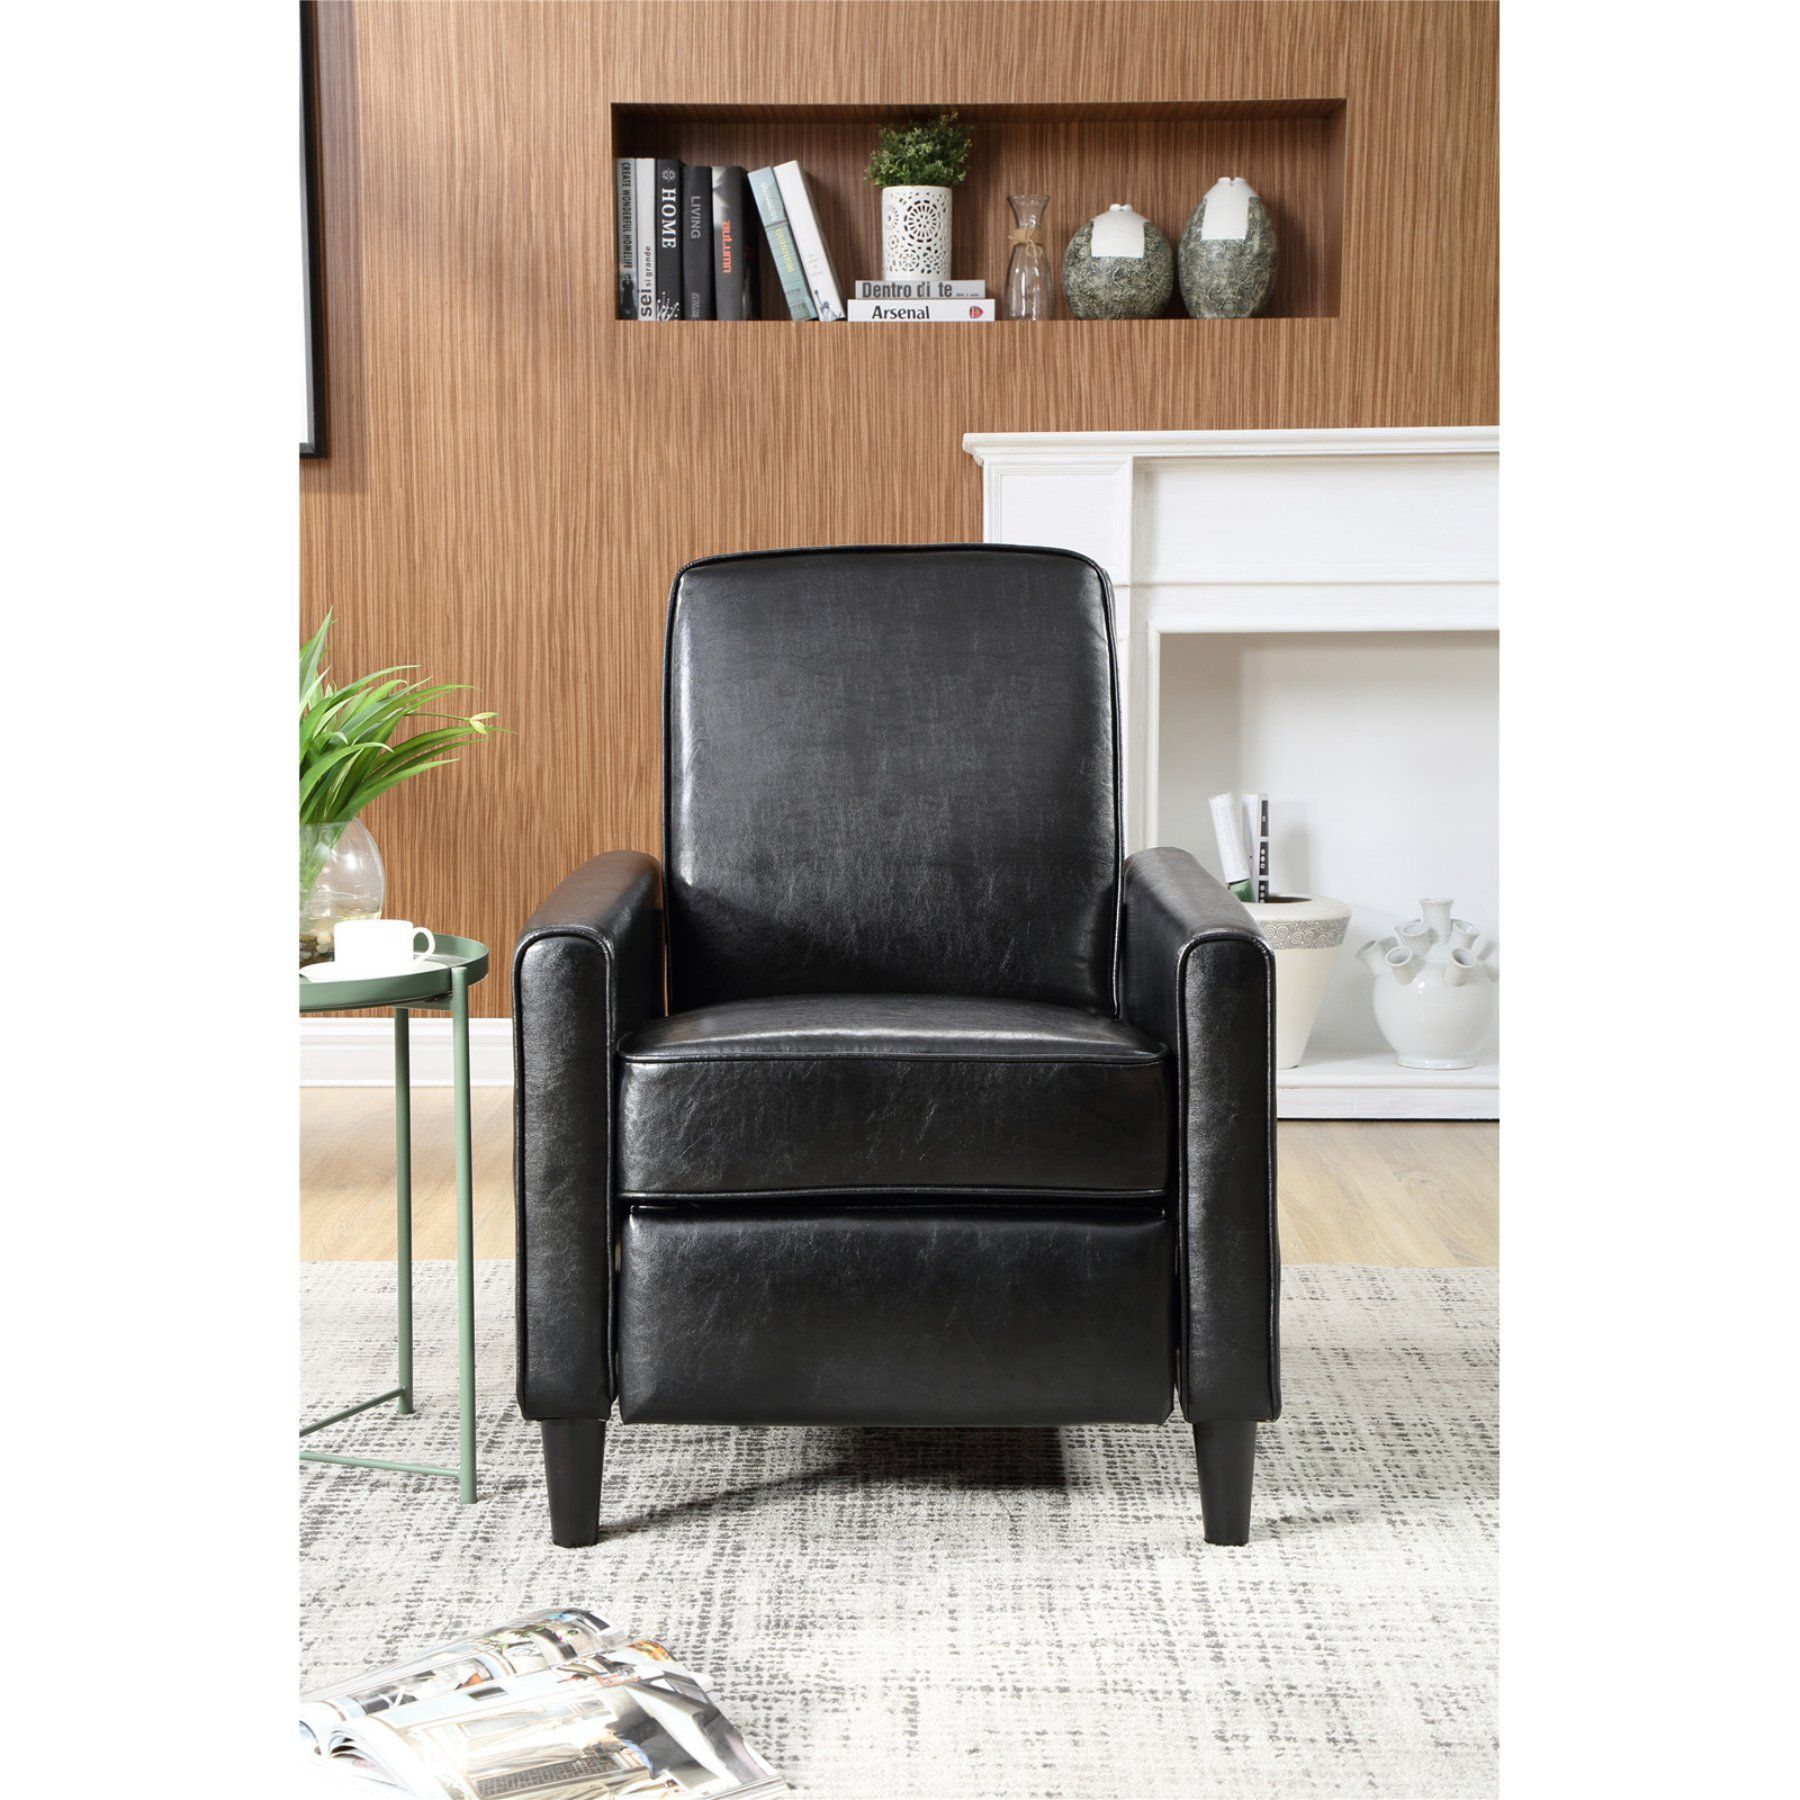 Nathaniel Home Push Back Faux Leather Recliner 73028 89bk